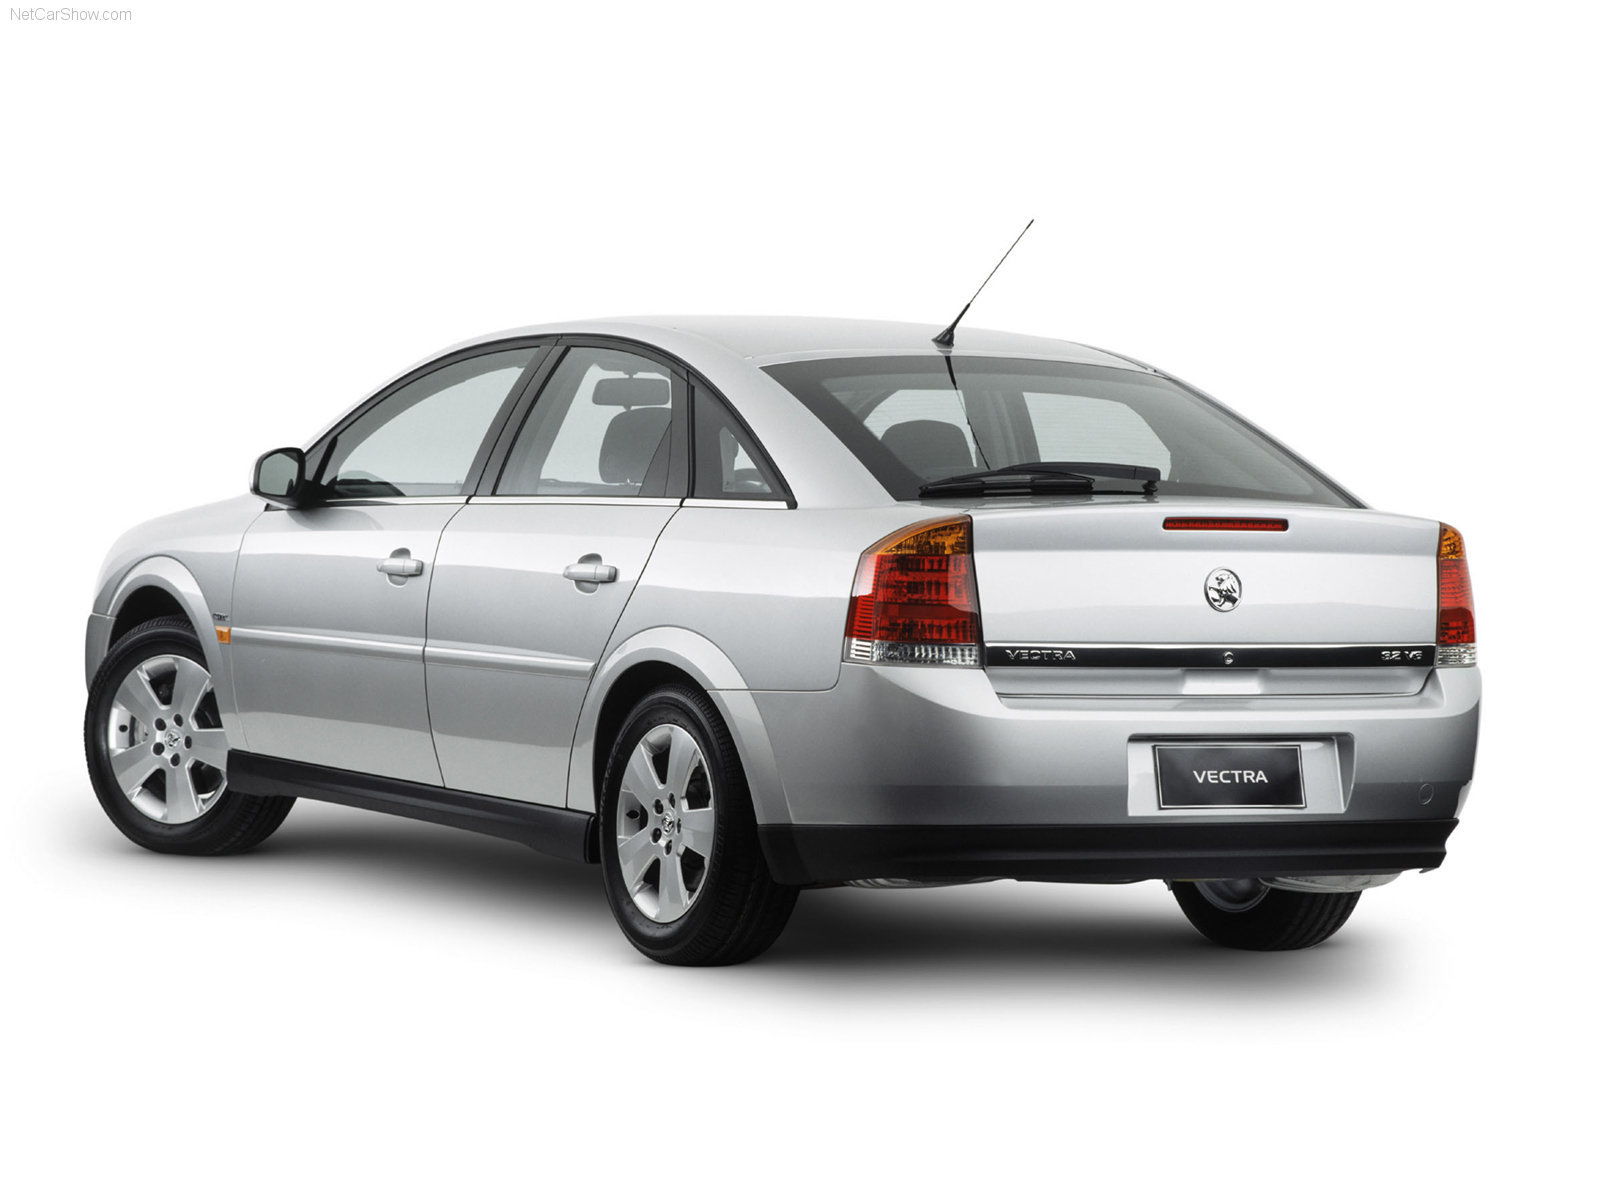 Pictures of holden vectra #3